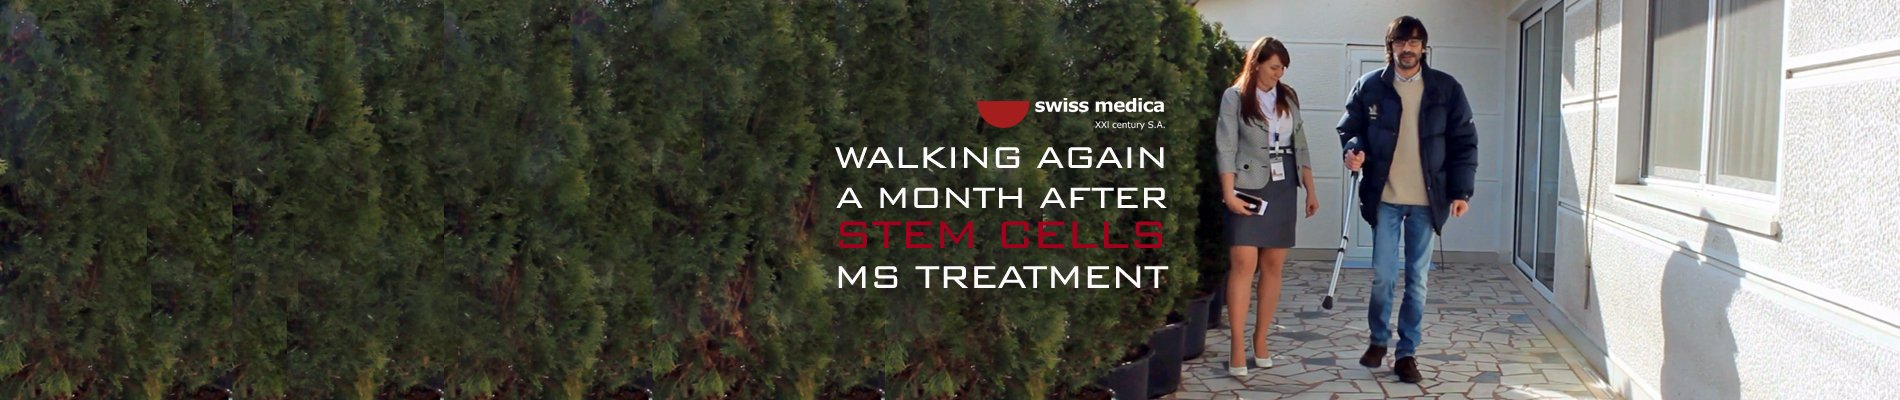 stem cells ms therapy